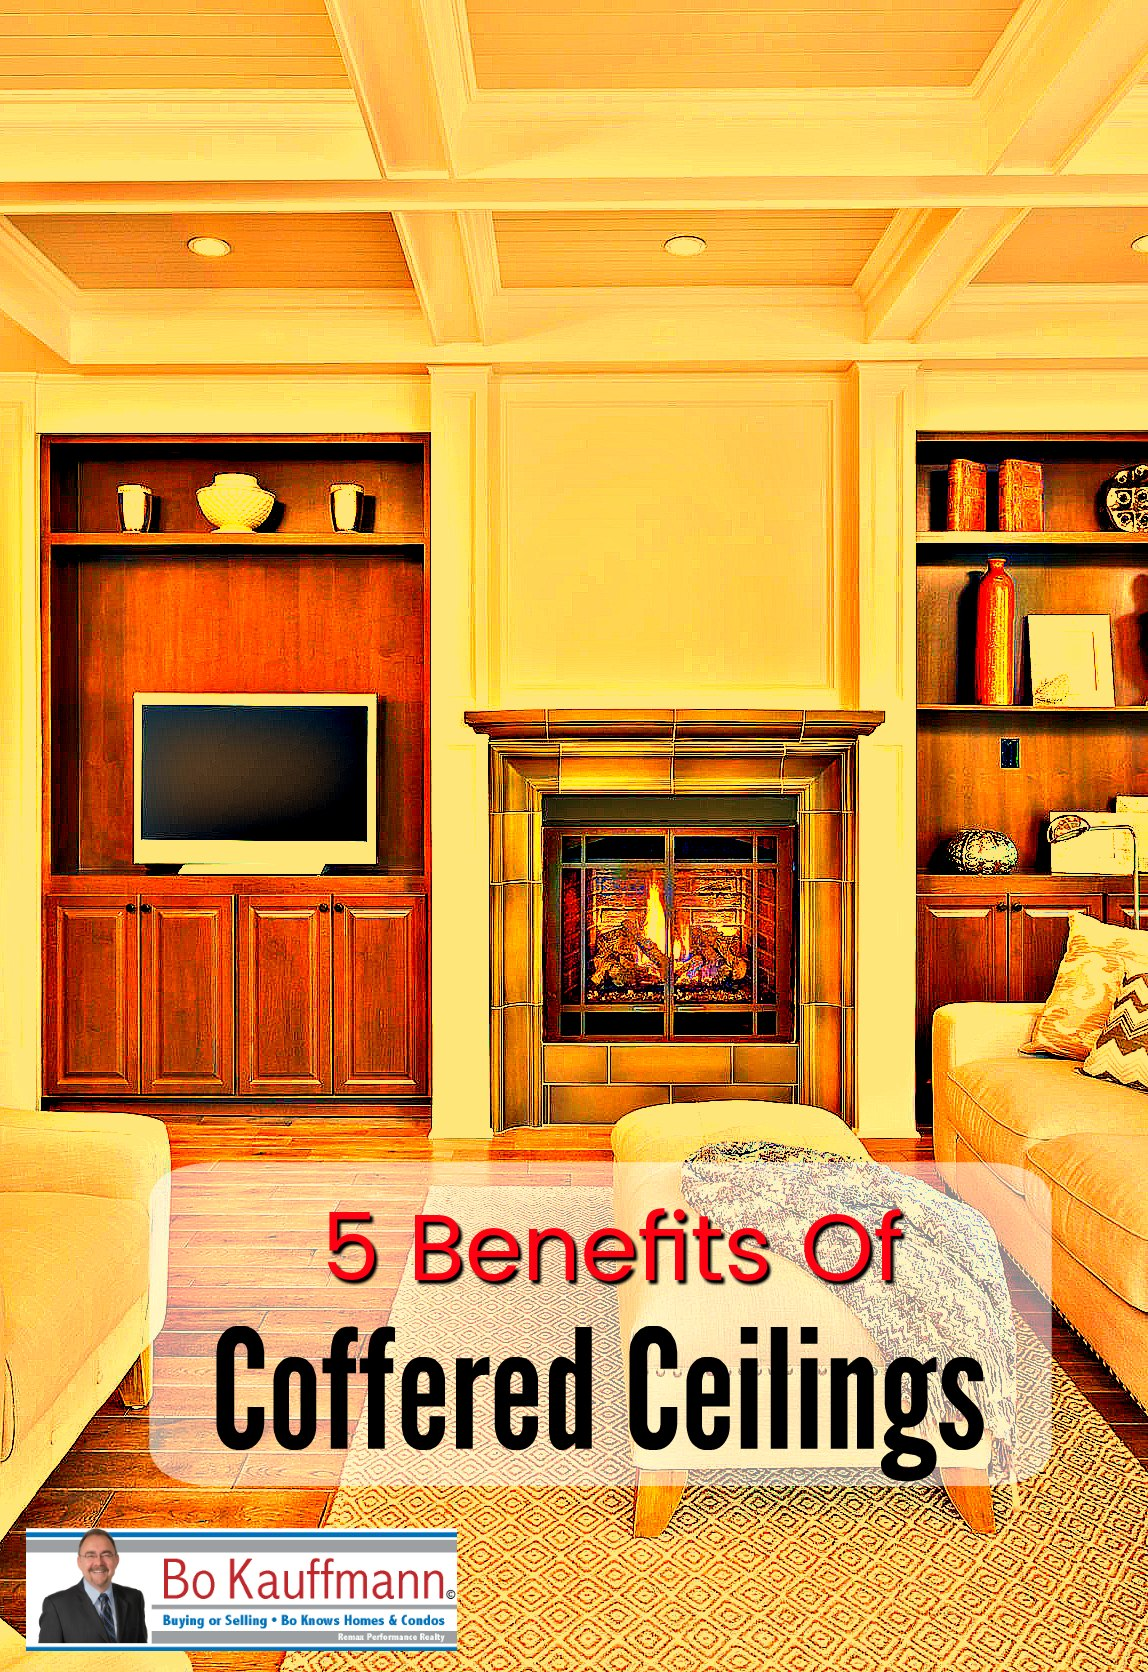 Coffered Ceilings - 5 Undeniable Benefits Of Installing Coffered Ceilings - Infographic